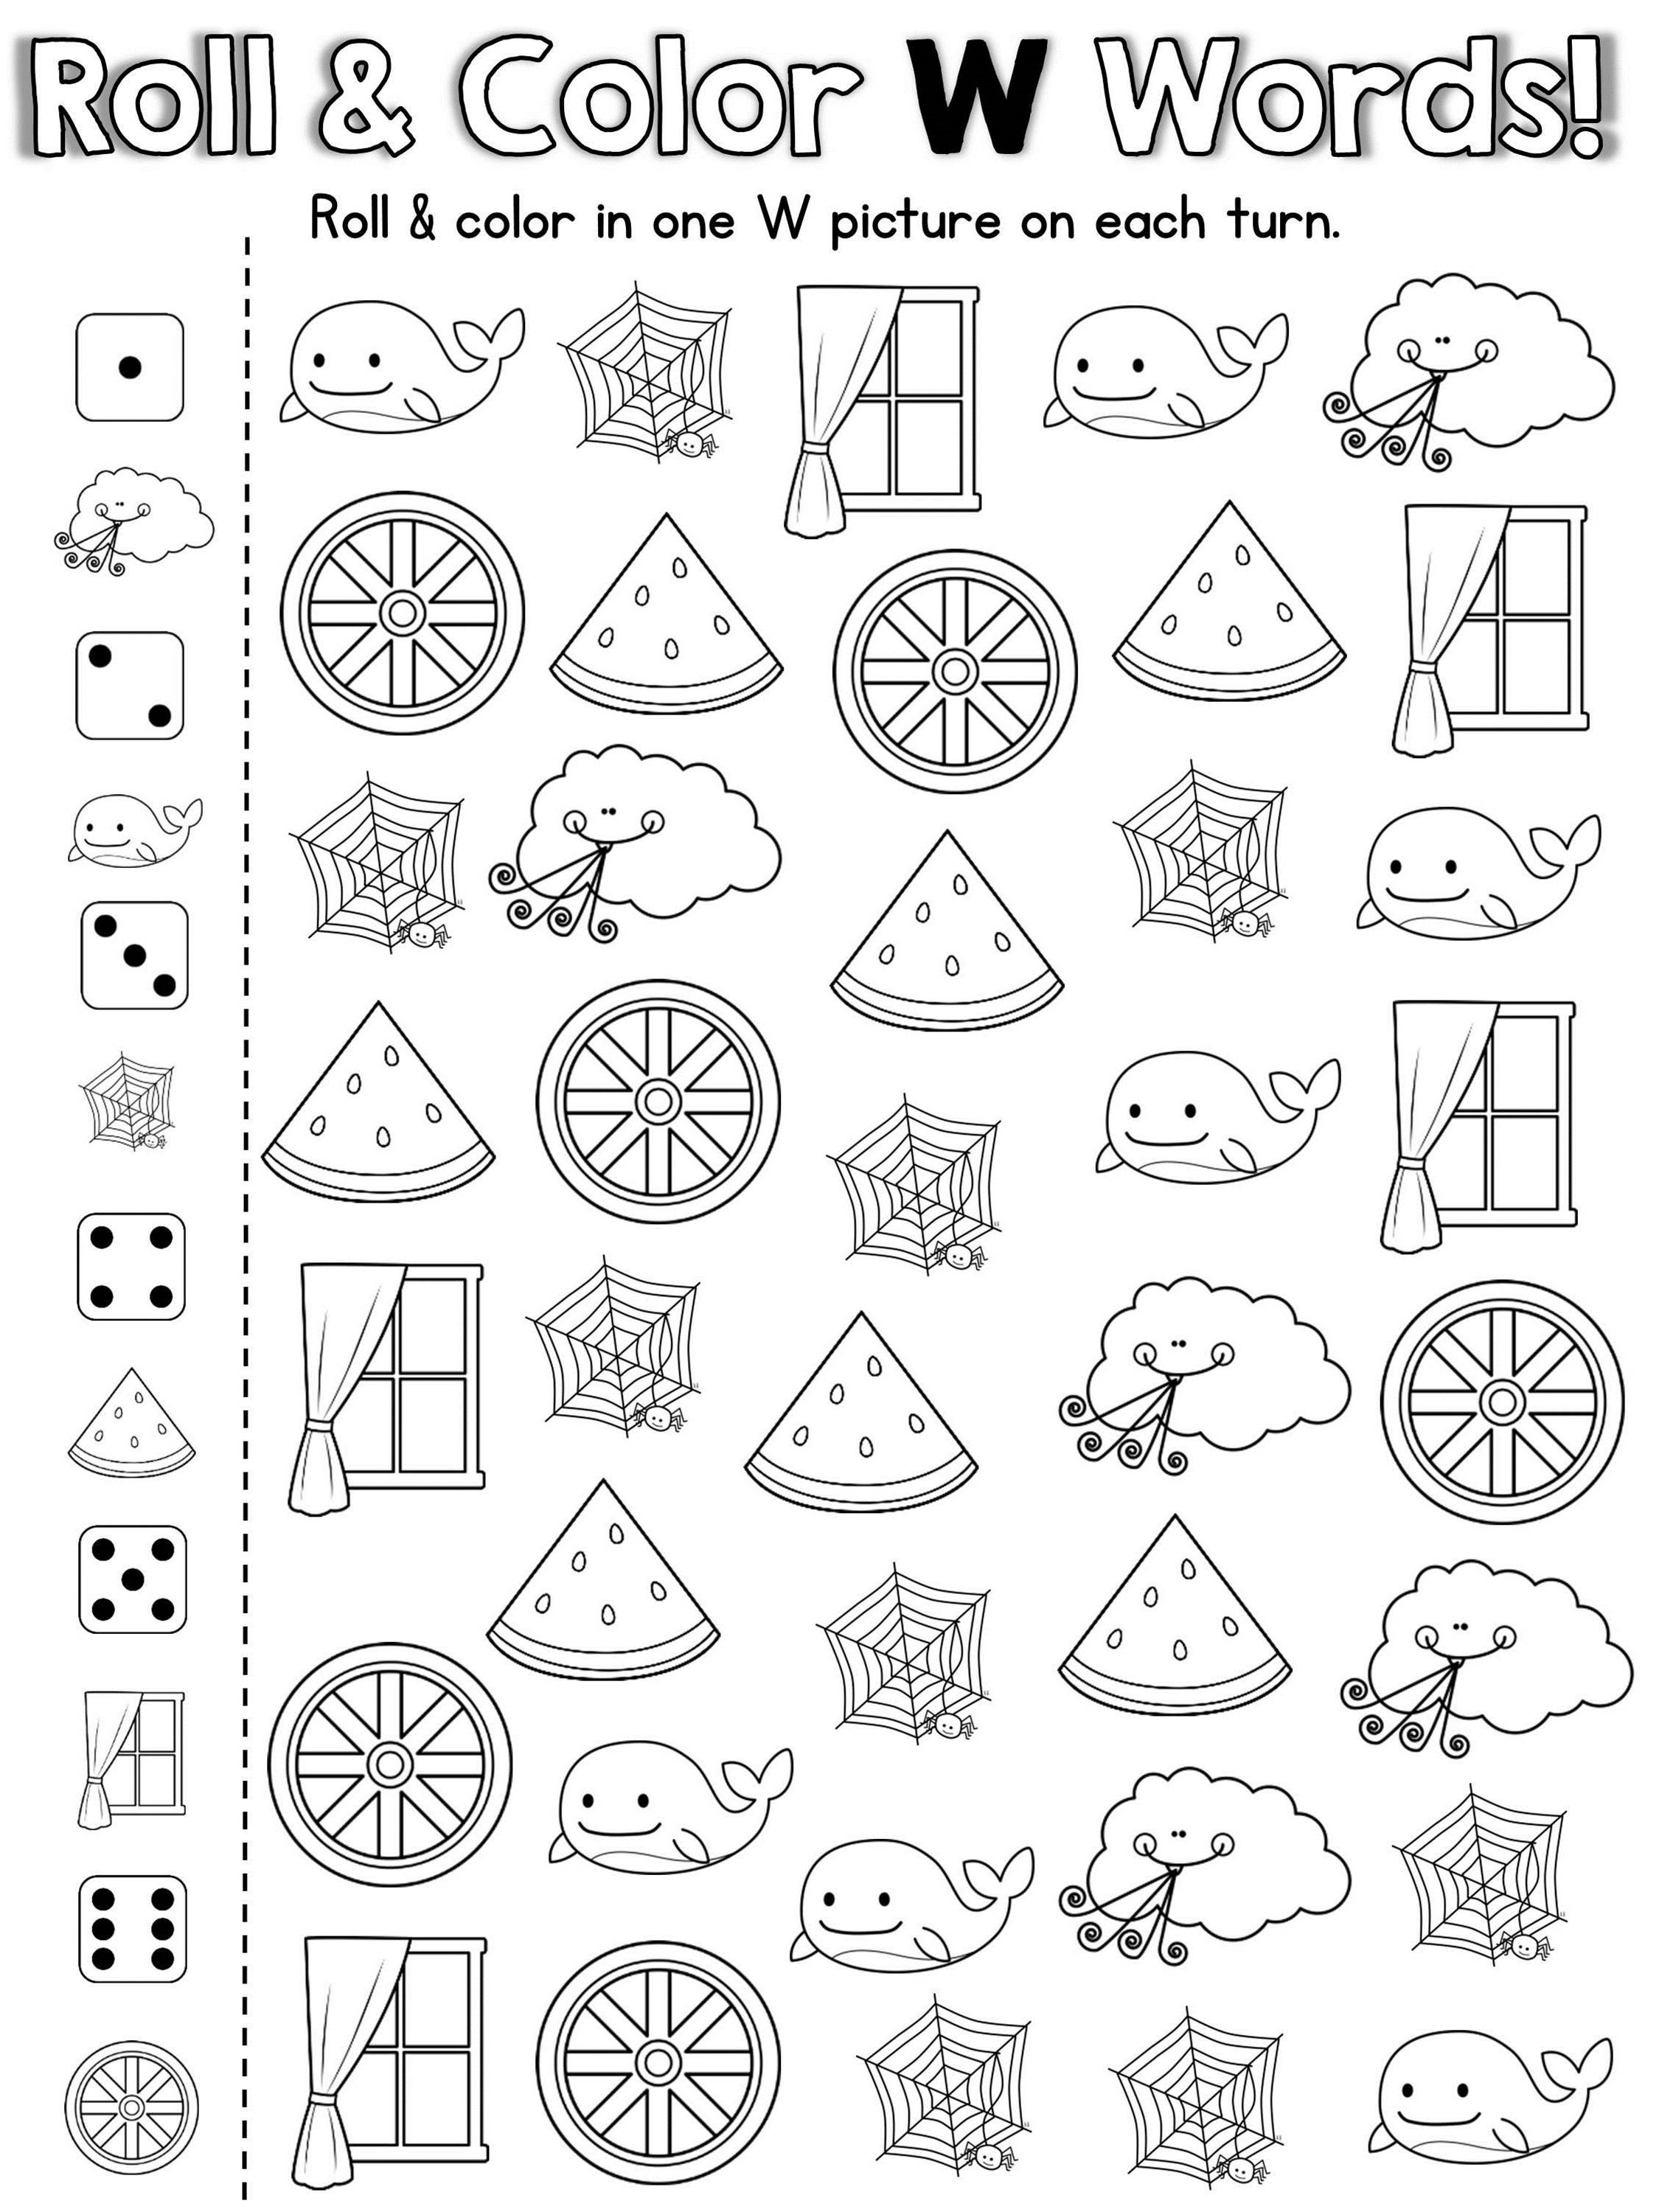 20 Fun Ready To Print Games To Practice The Letter W